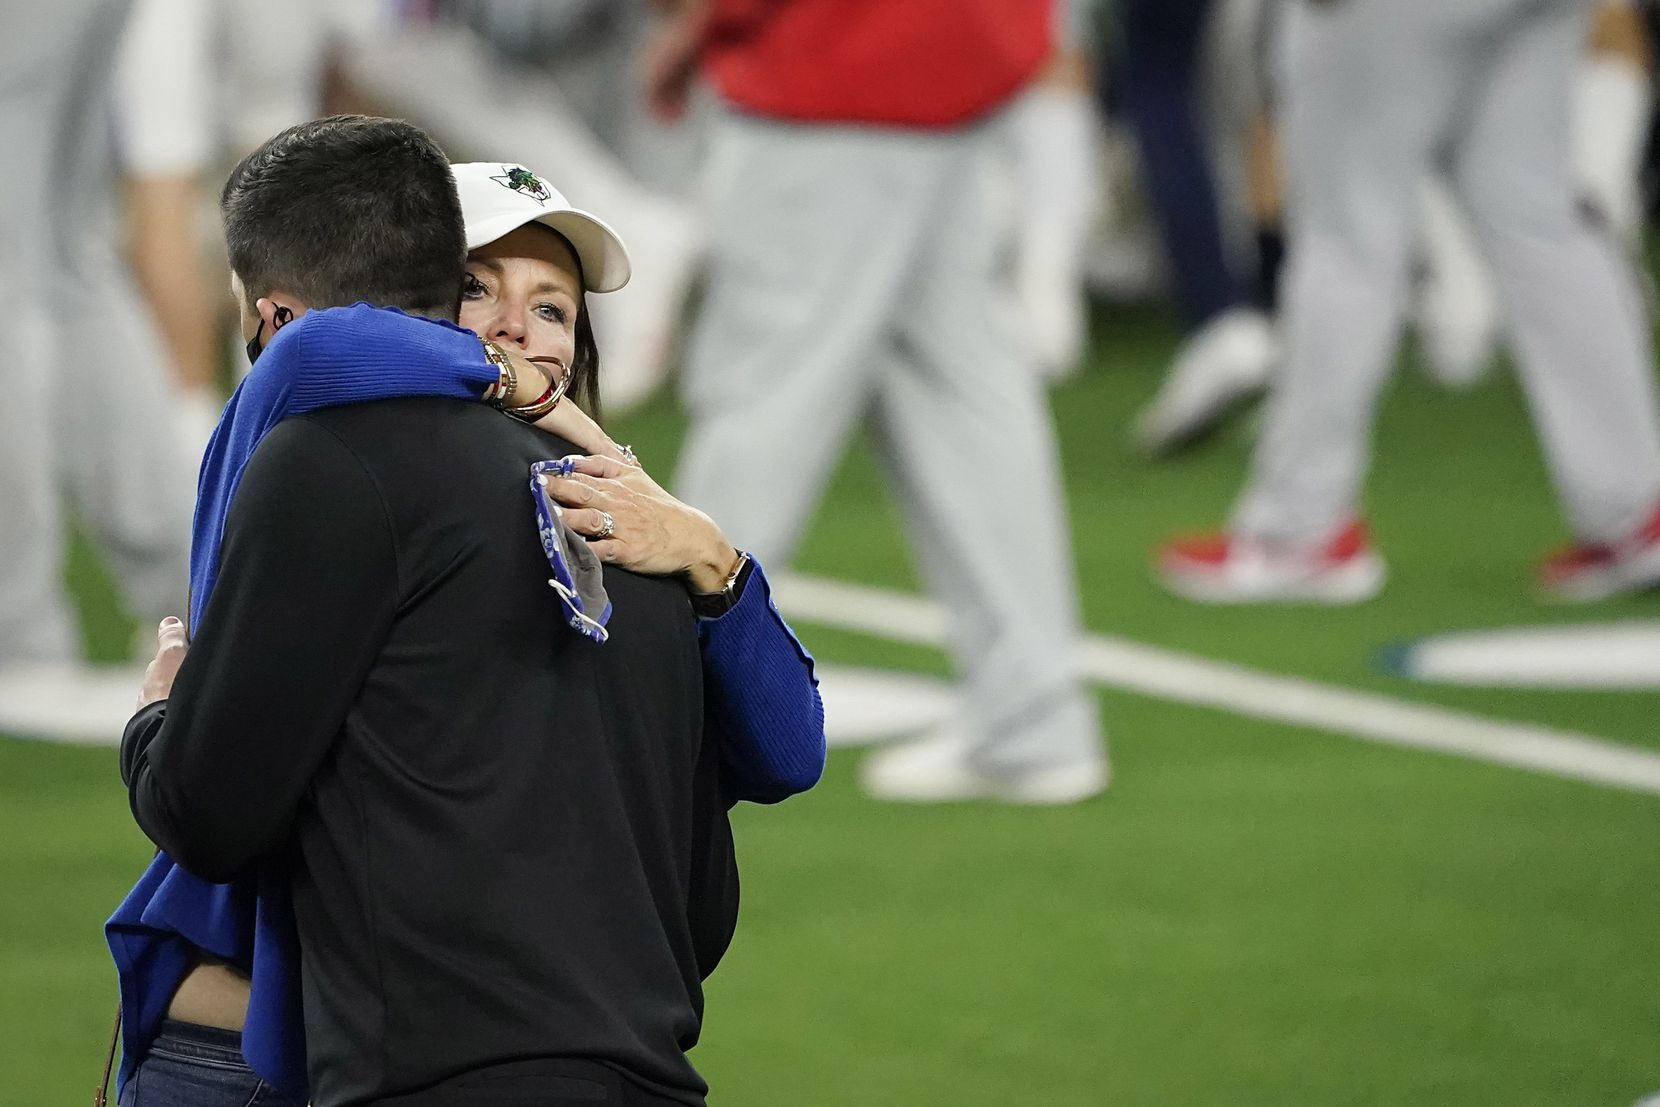 Southlake Carroll head coach Riley Dodge gets a hug from his mother Elizabeth Dodge after a 52-34 loss to Austin Westlake, coached by his father Todd Dodge, in the Class 6A Division I state football championship game at AT&T Stadium on Saturday, Jan. 16, 2021, in Arlington, Texas.